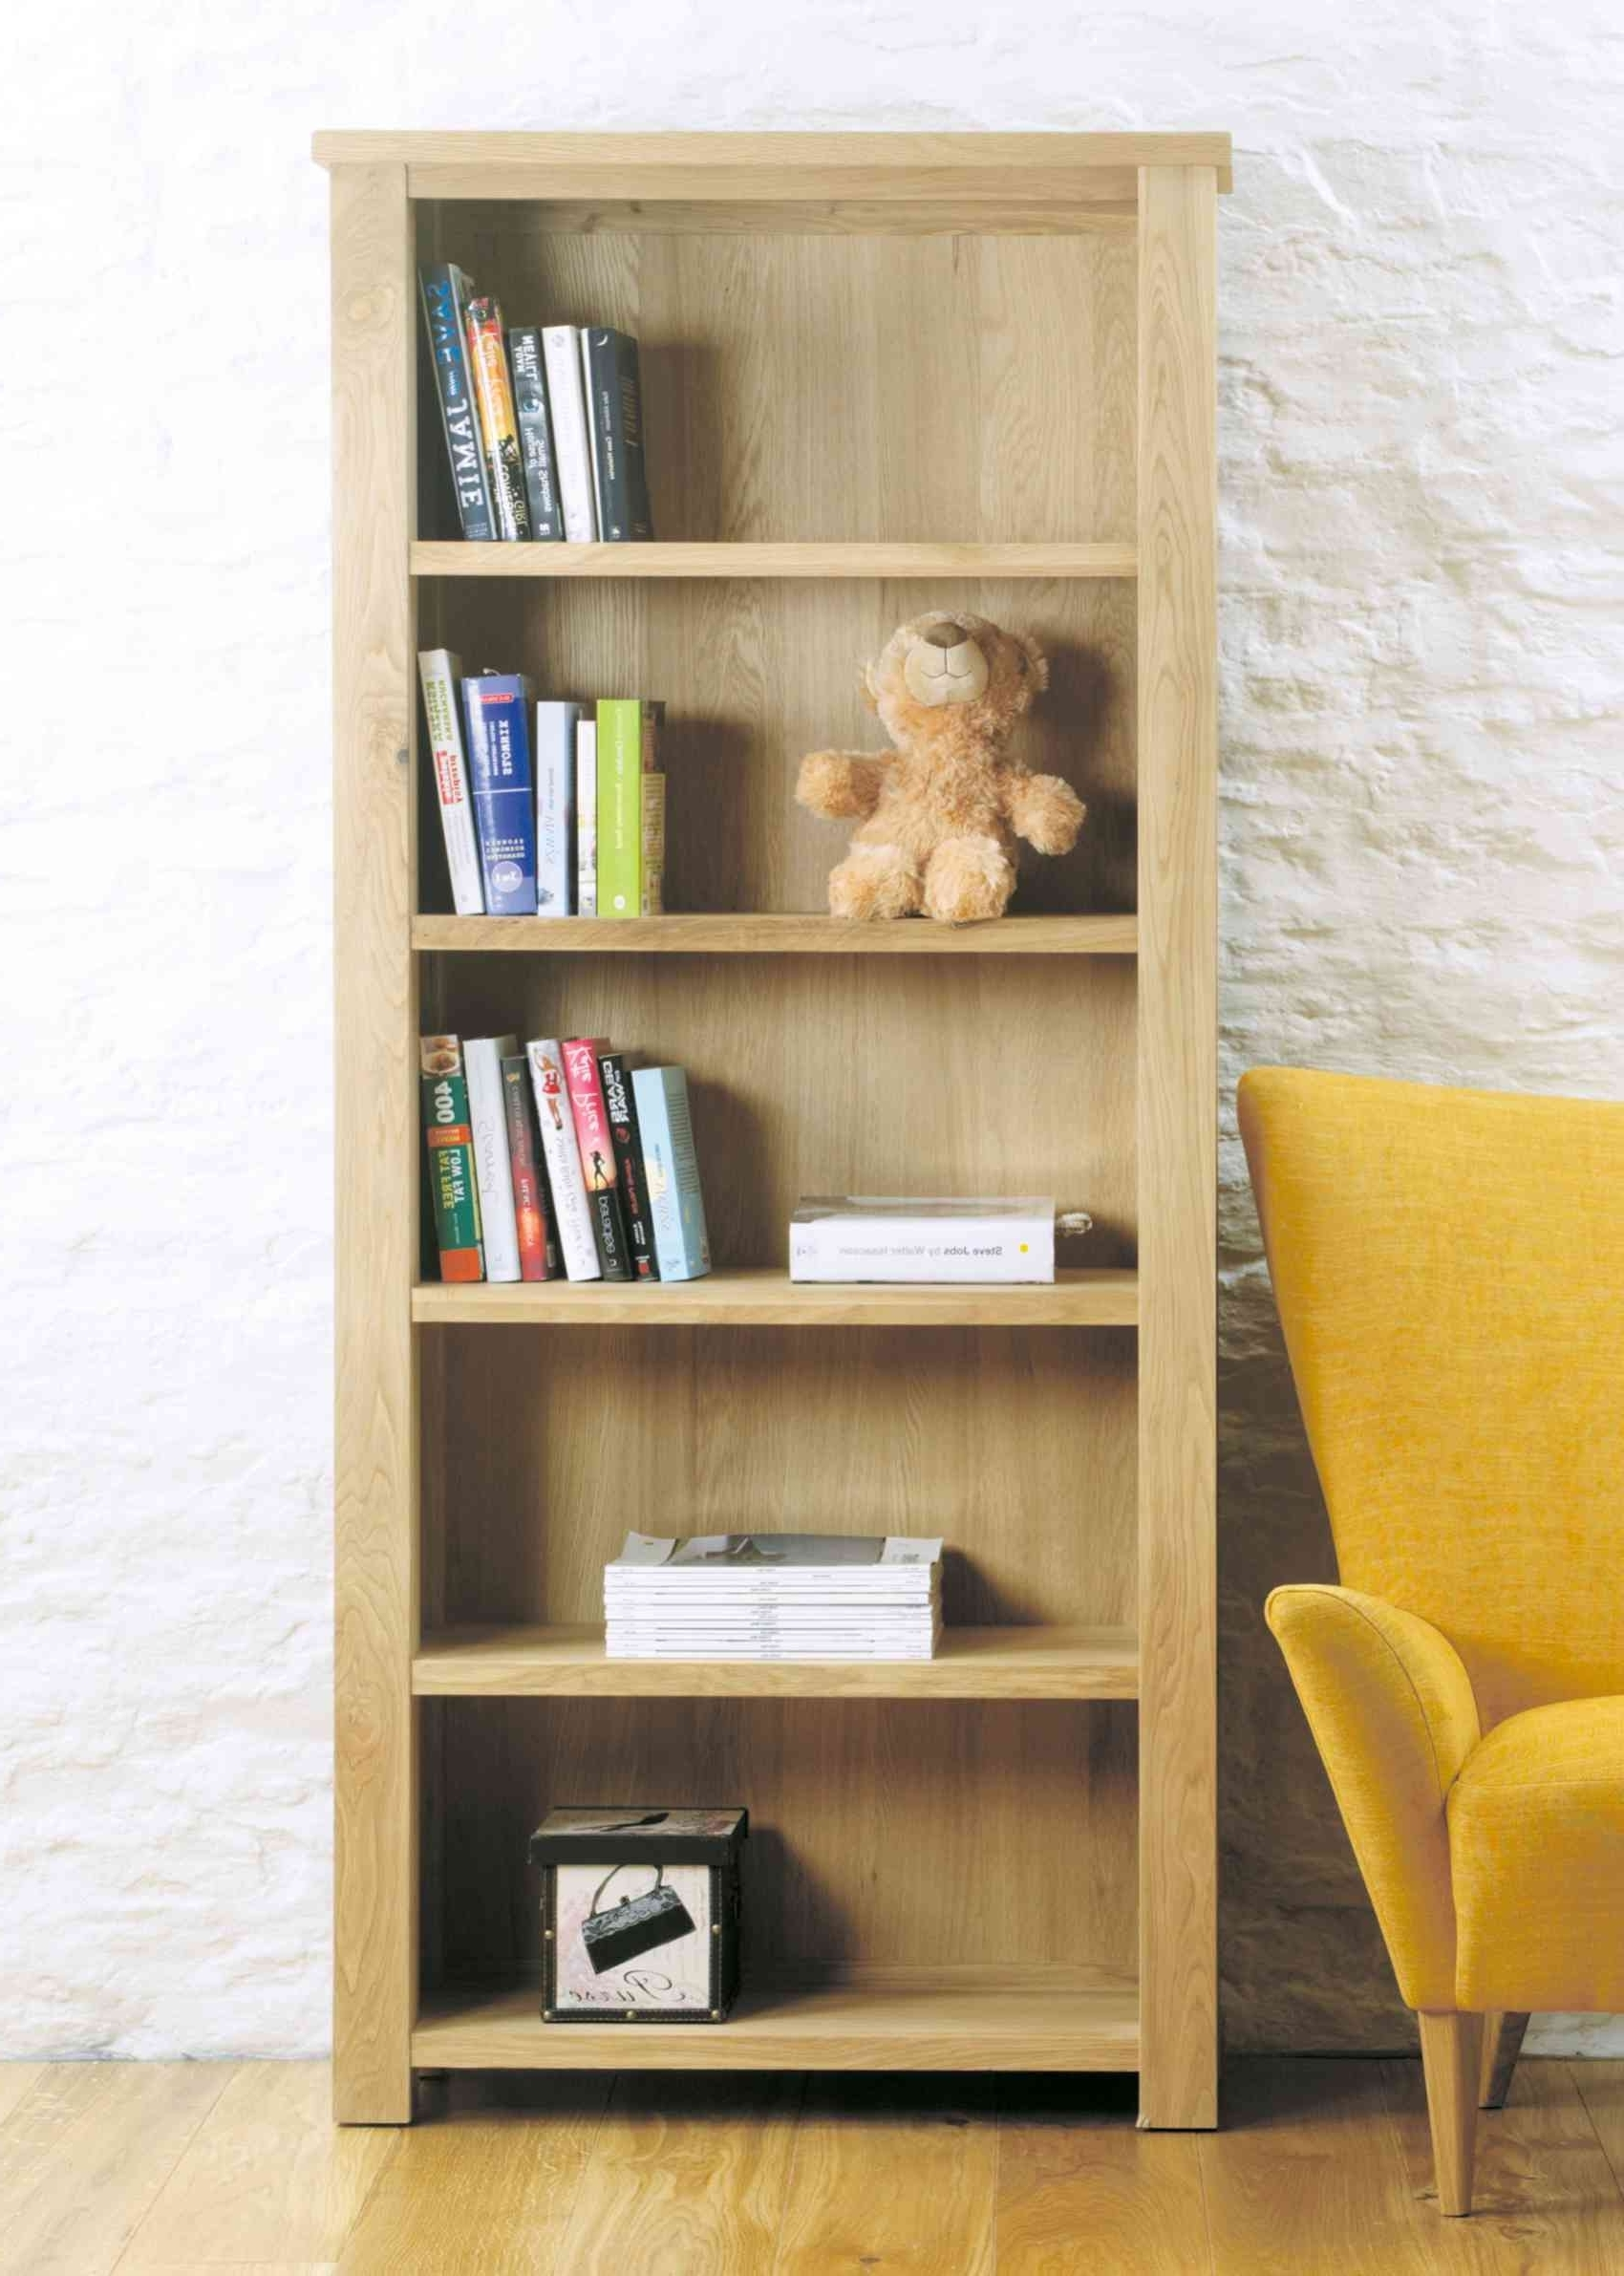 Contemporary Oak Shelving Units Intended For Widely Used Contemporary Oak Shelving Units • Shelves (View 4 of 15)